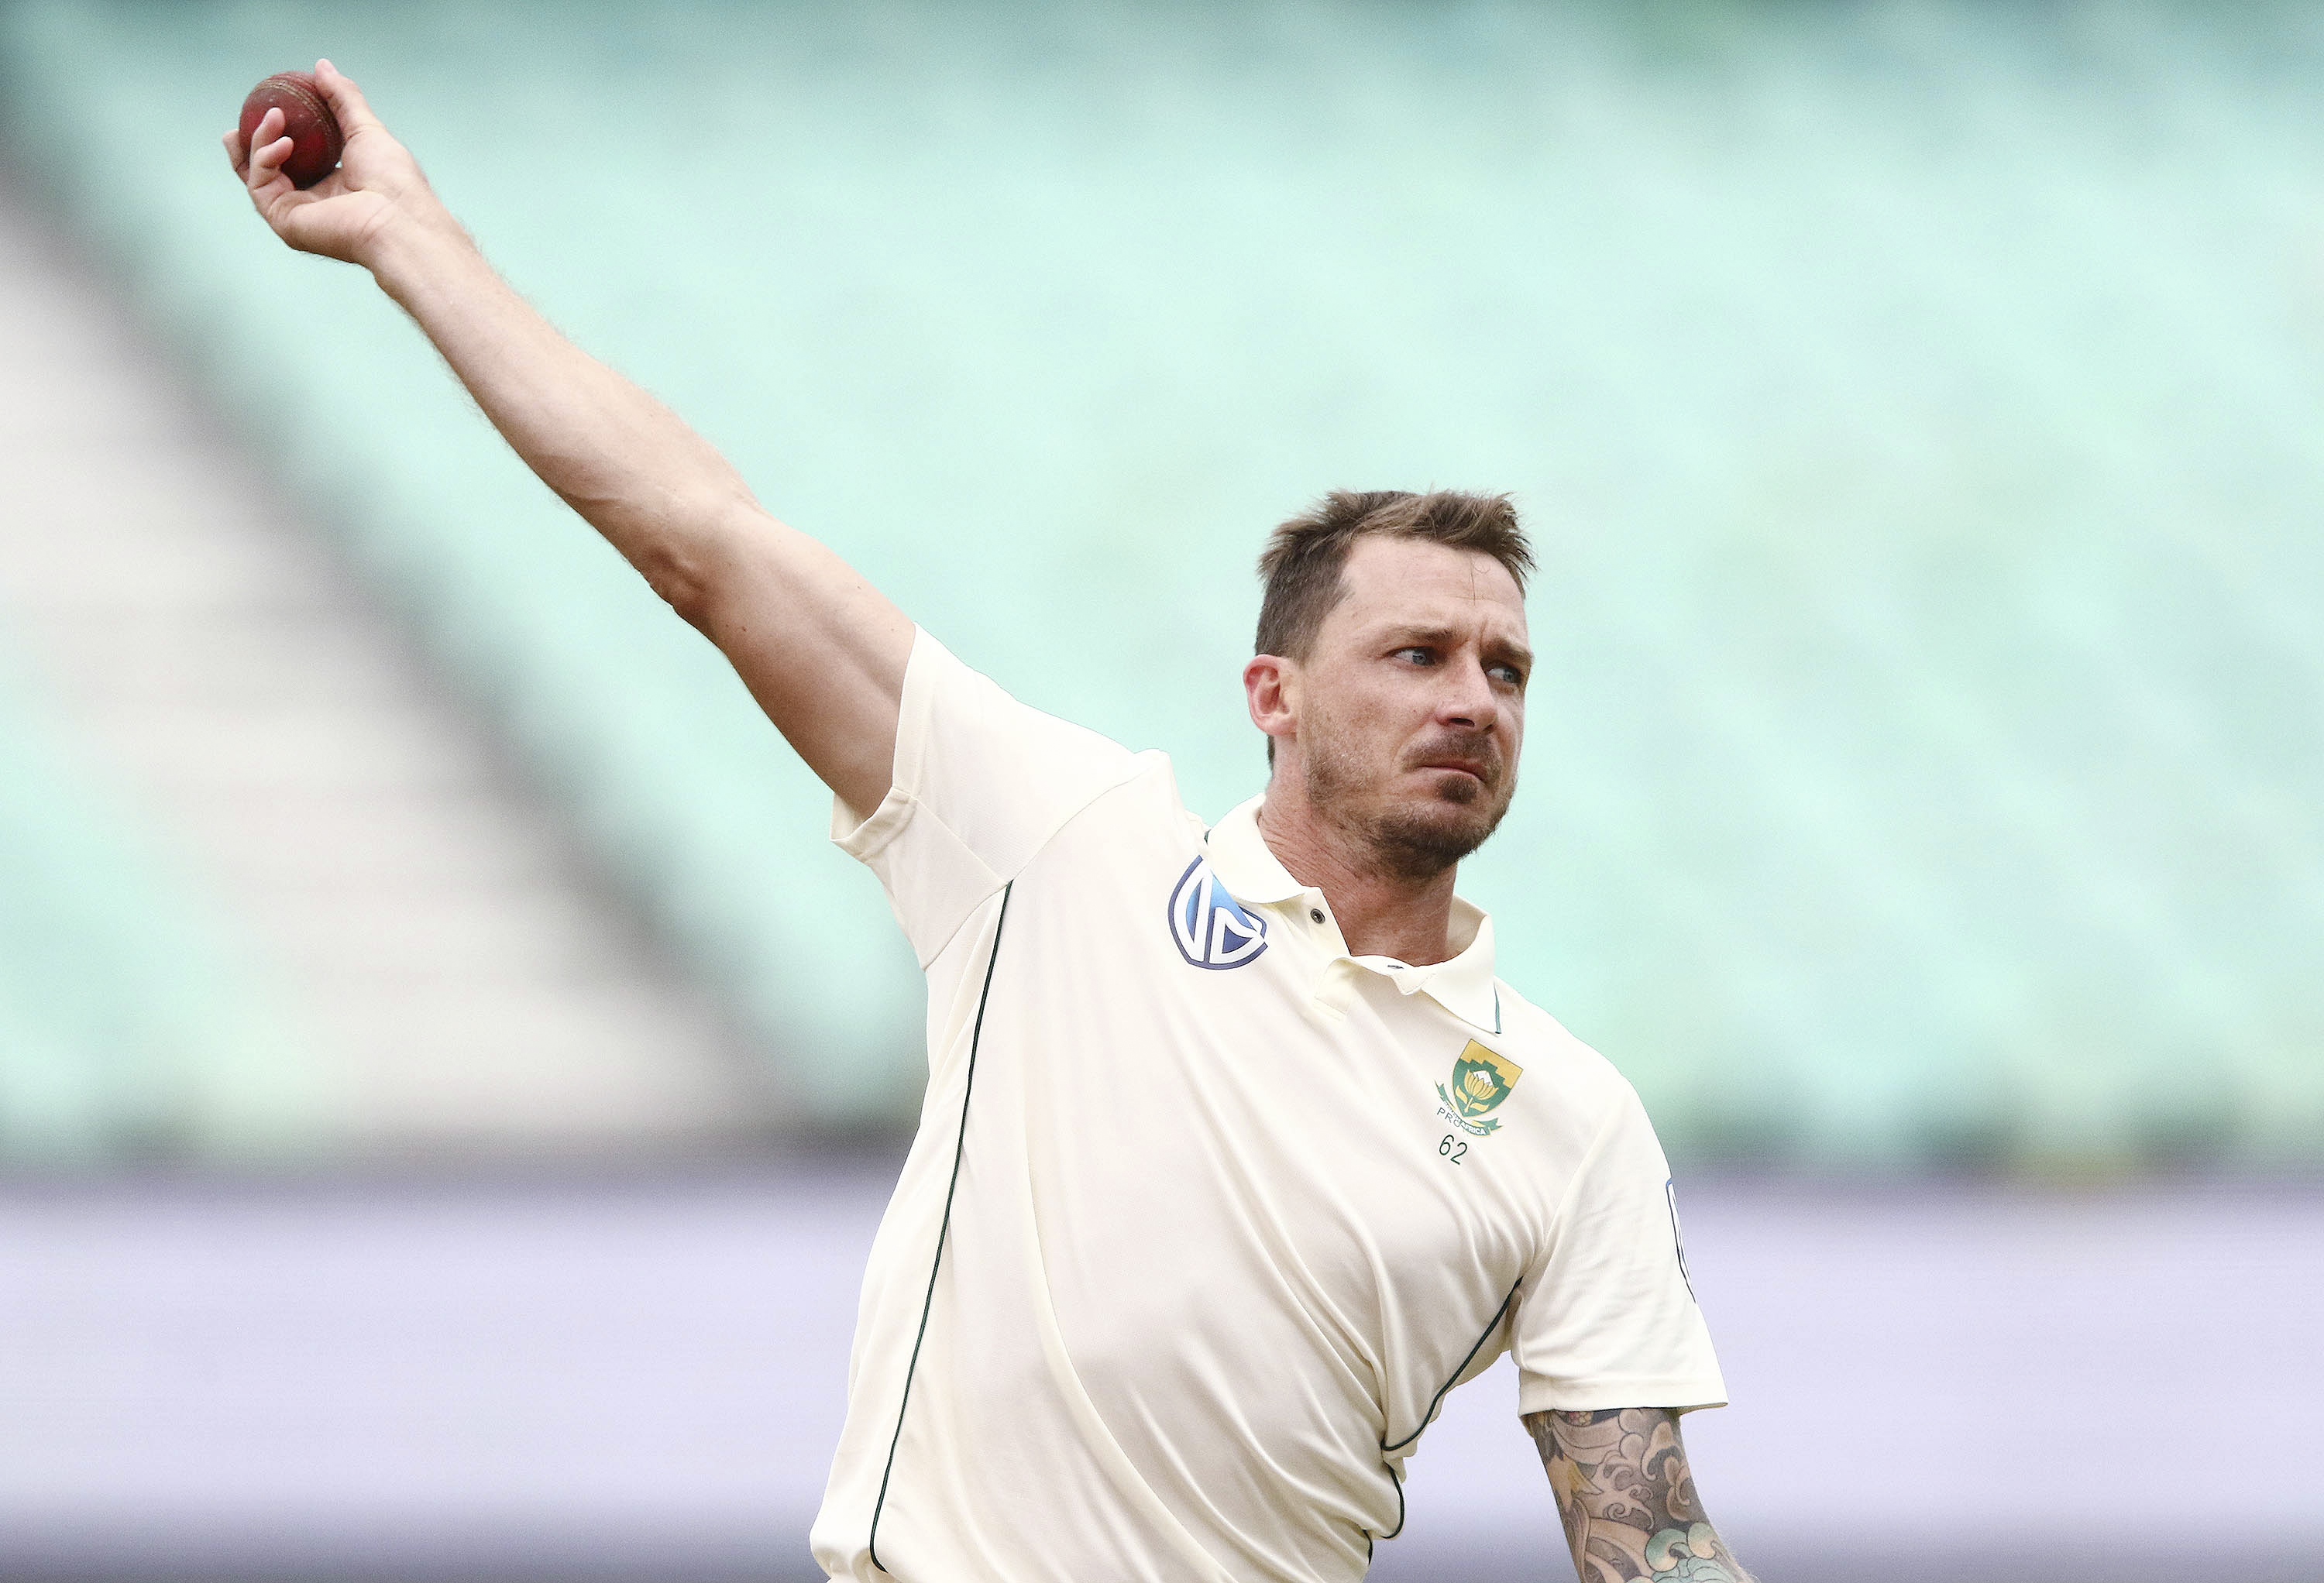 'The greatest of his generation' – tributes pour in for Dale Steyn